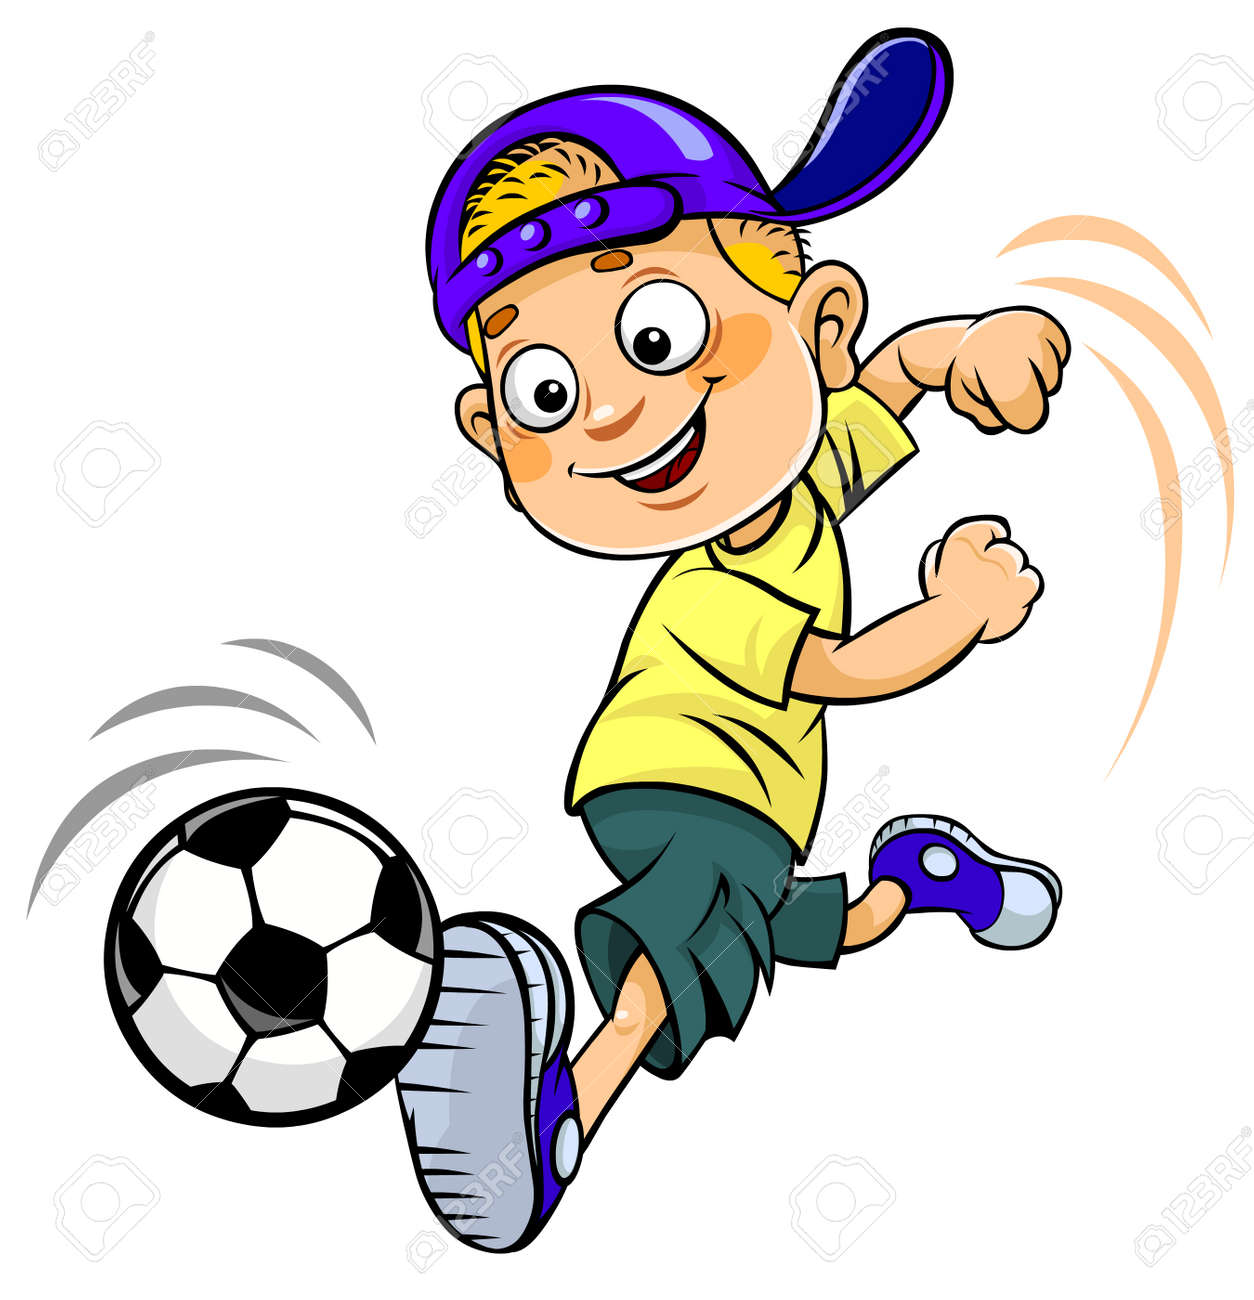 Image result for soccer cartoon